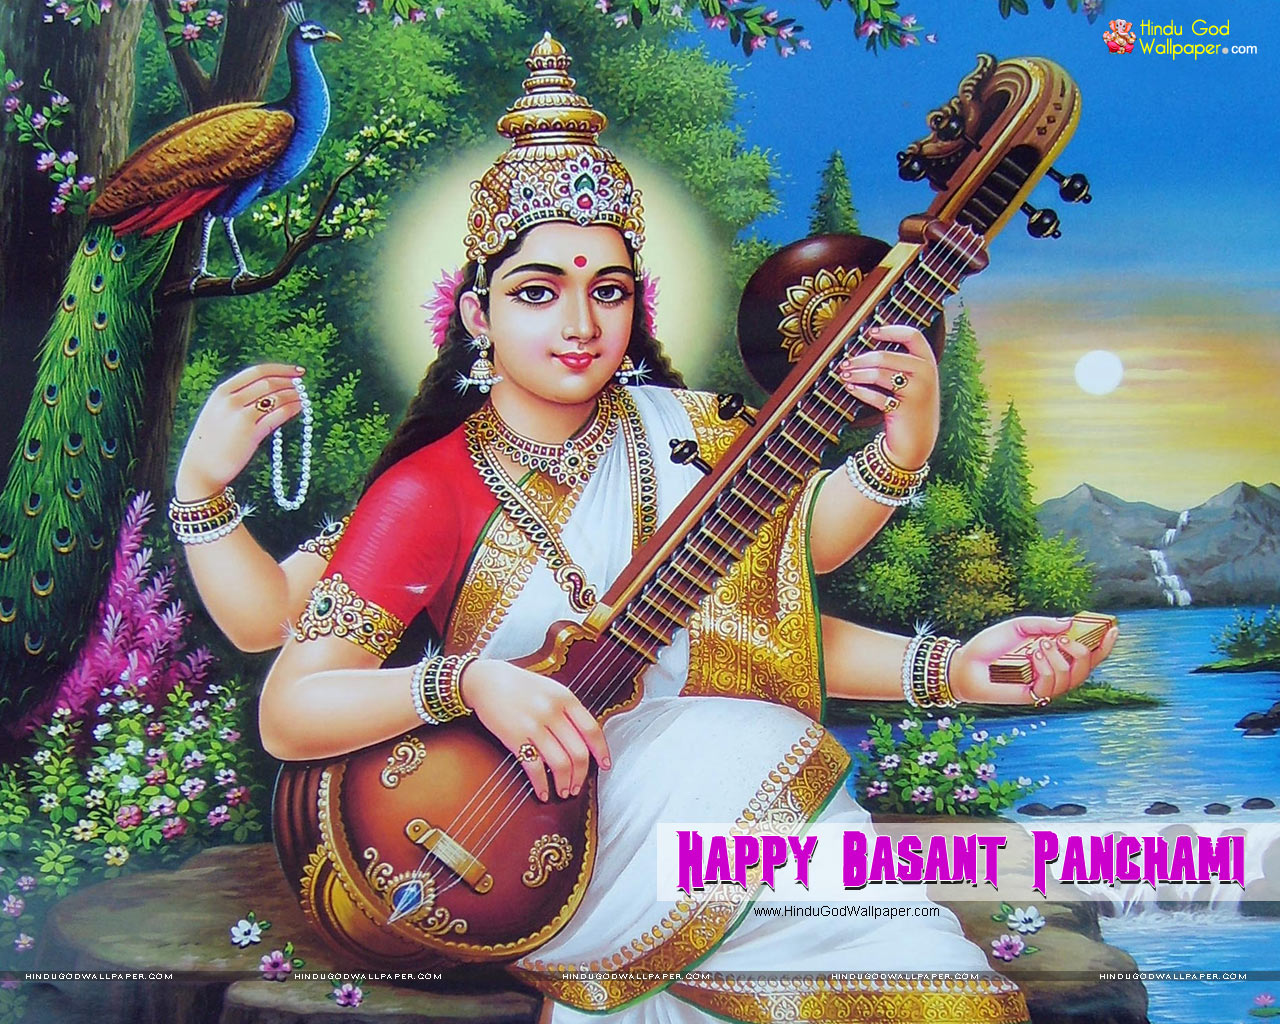 Basant Panchami Wallpaper